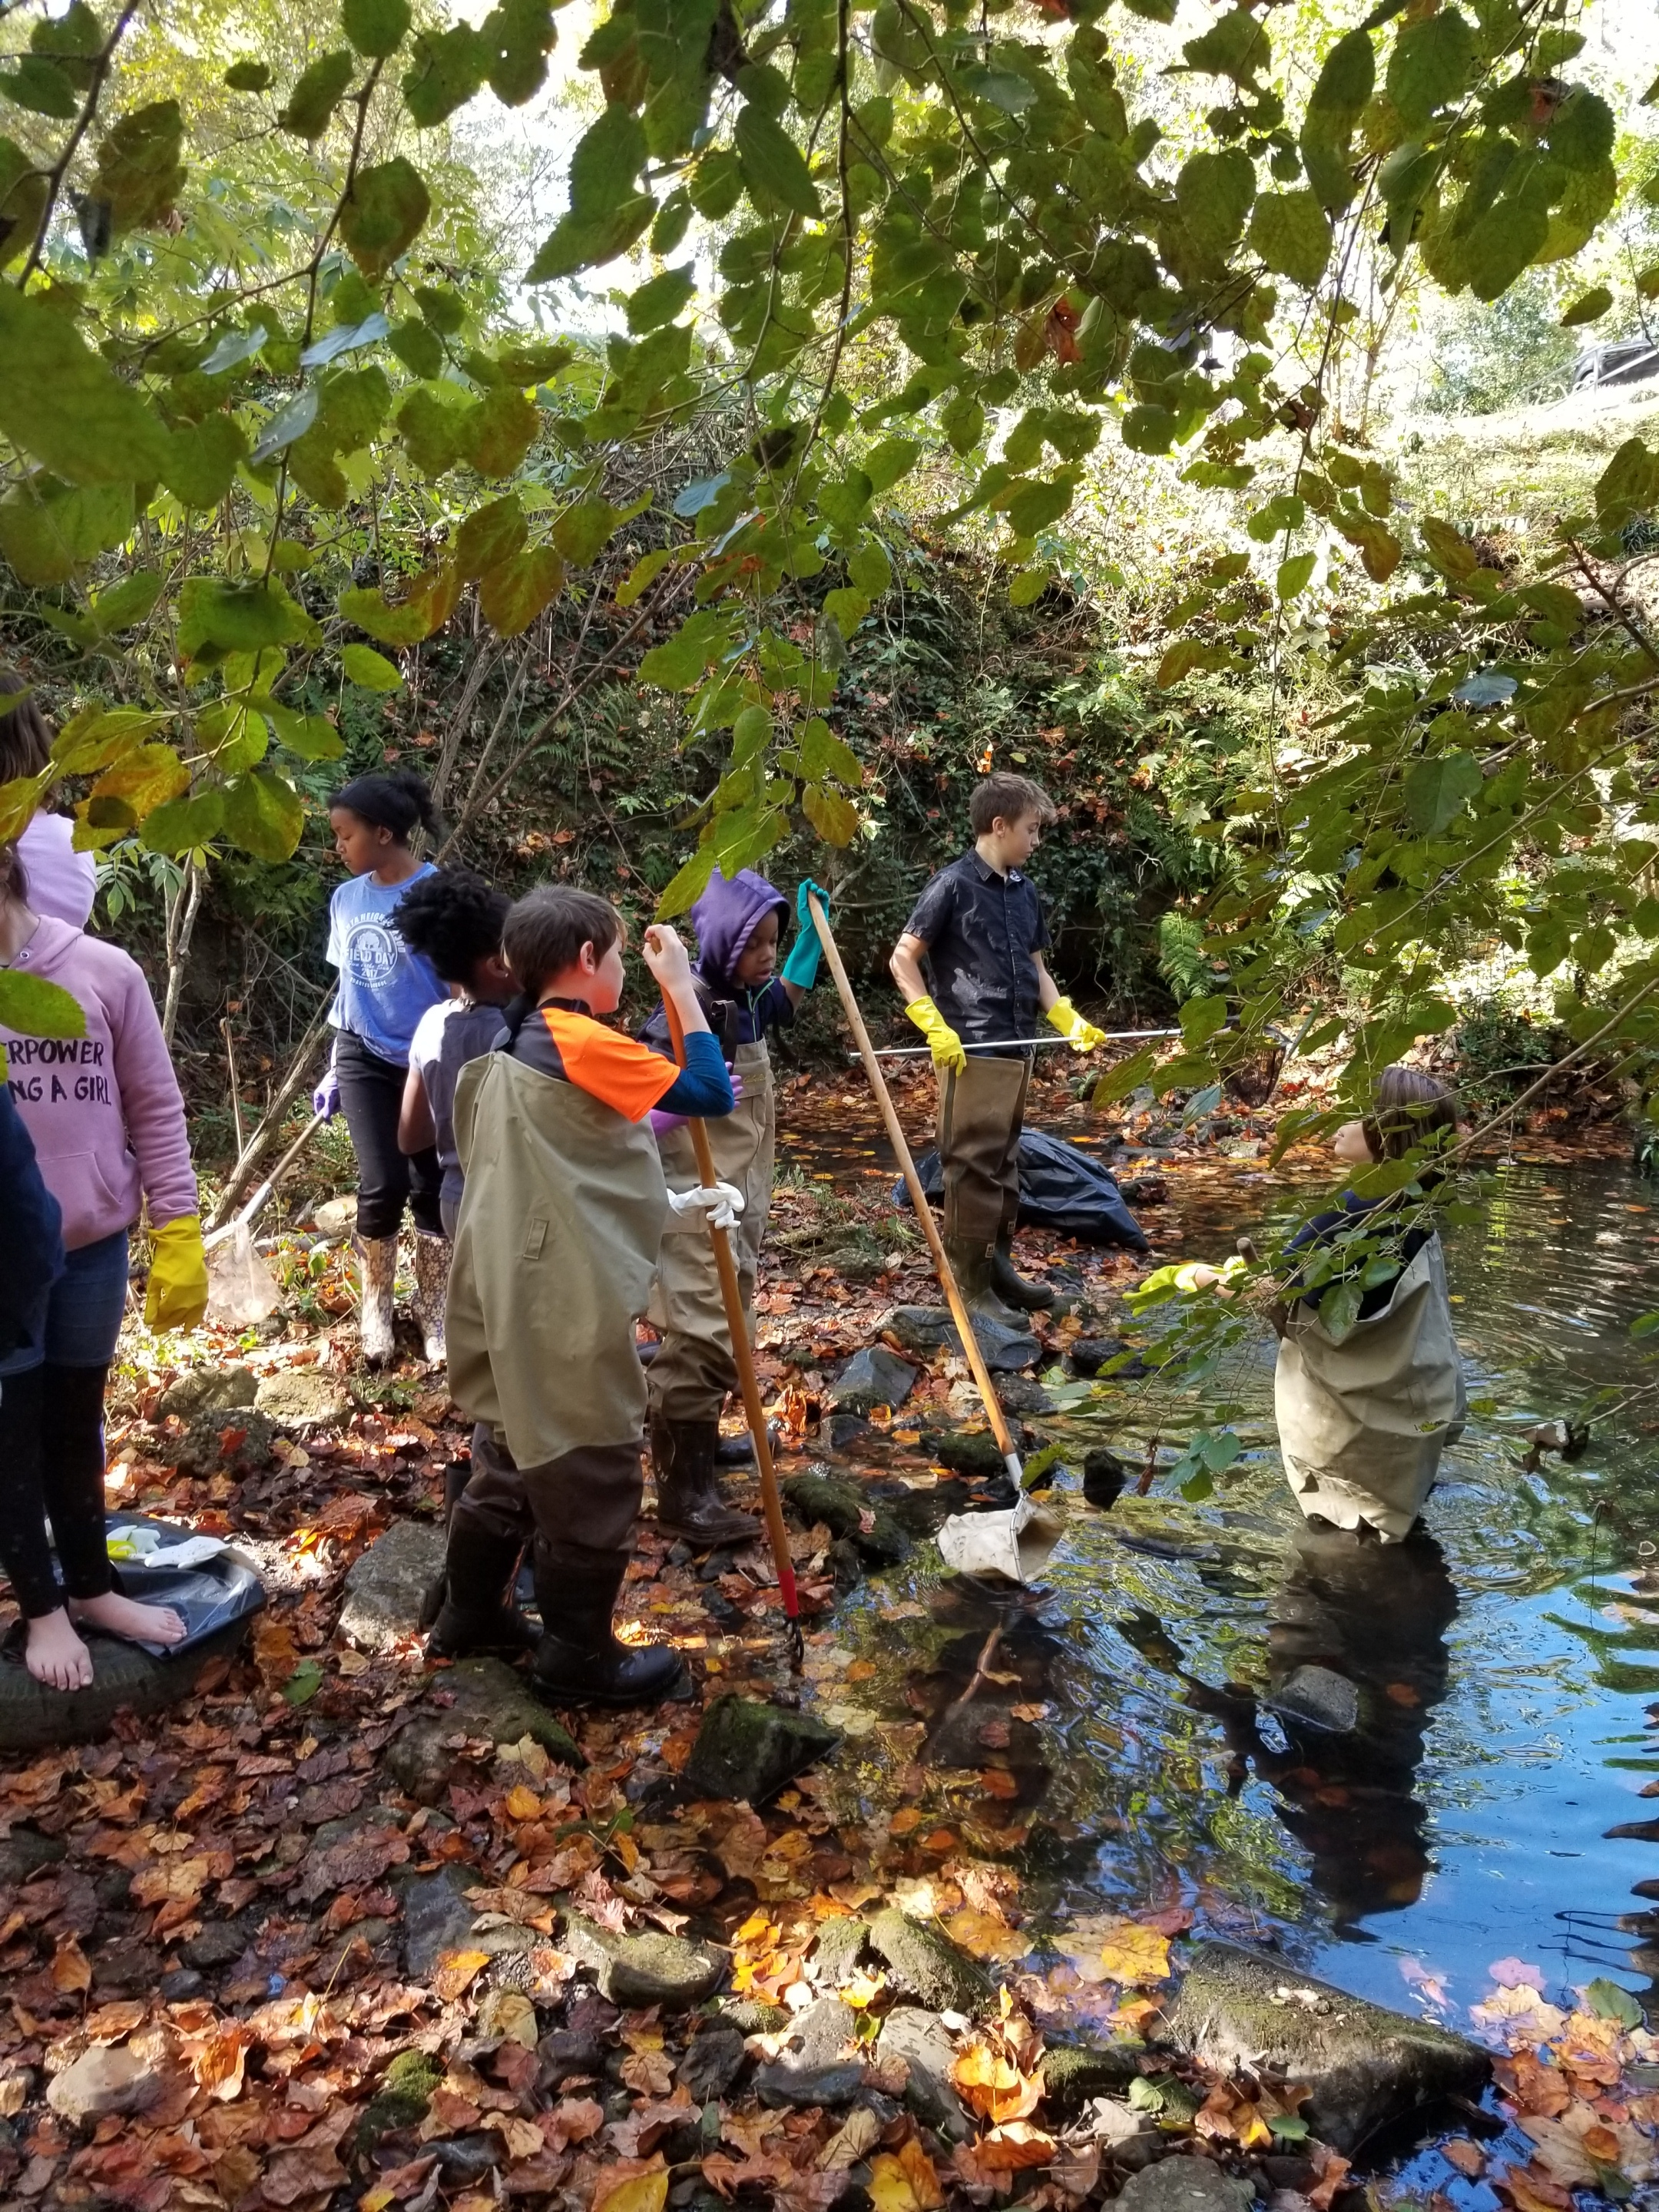 On Friday, November 17th, ANCS 6th graders cleaned litter from Ripplewater Creek in Brownwood Park and learned about watersheds and environmental stewardship.